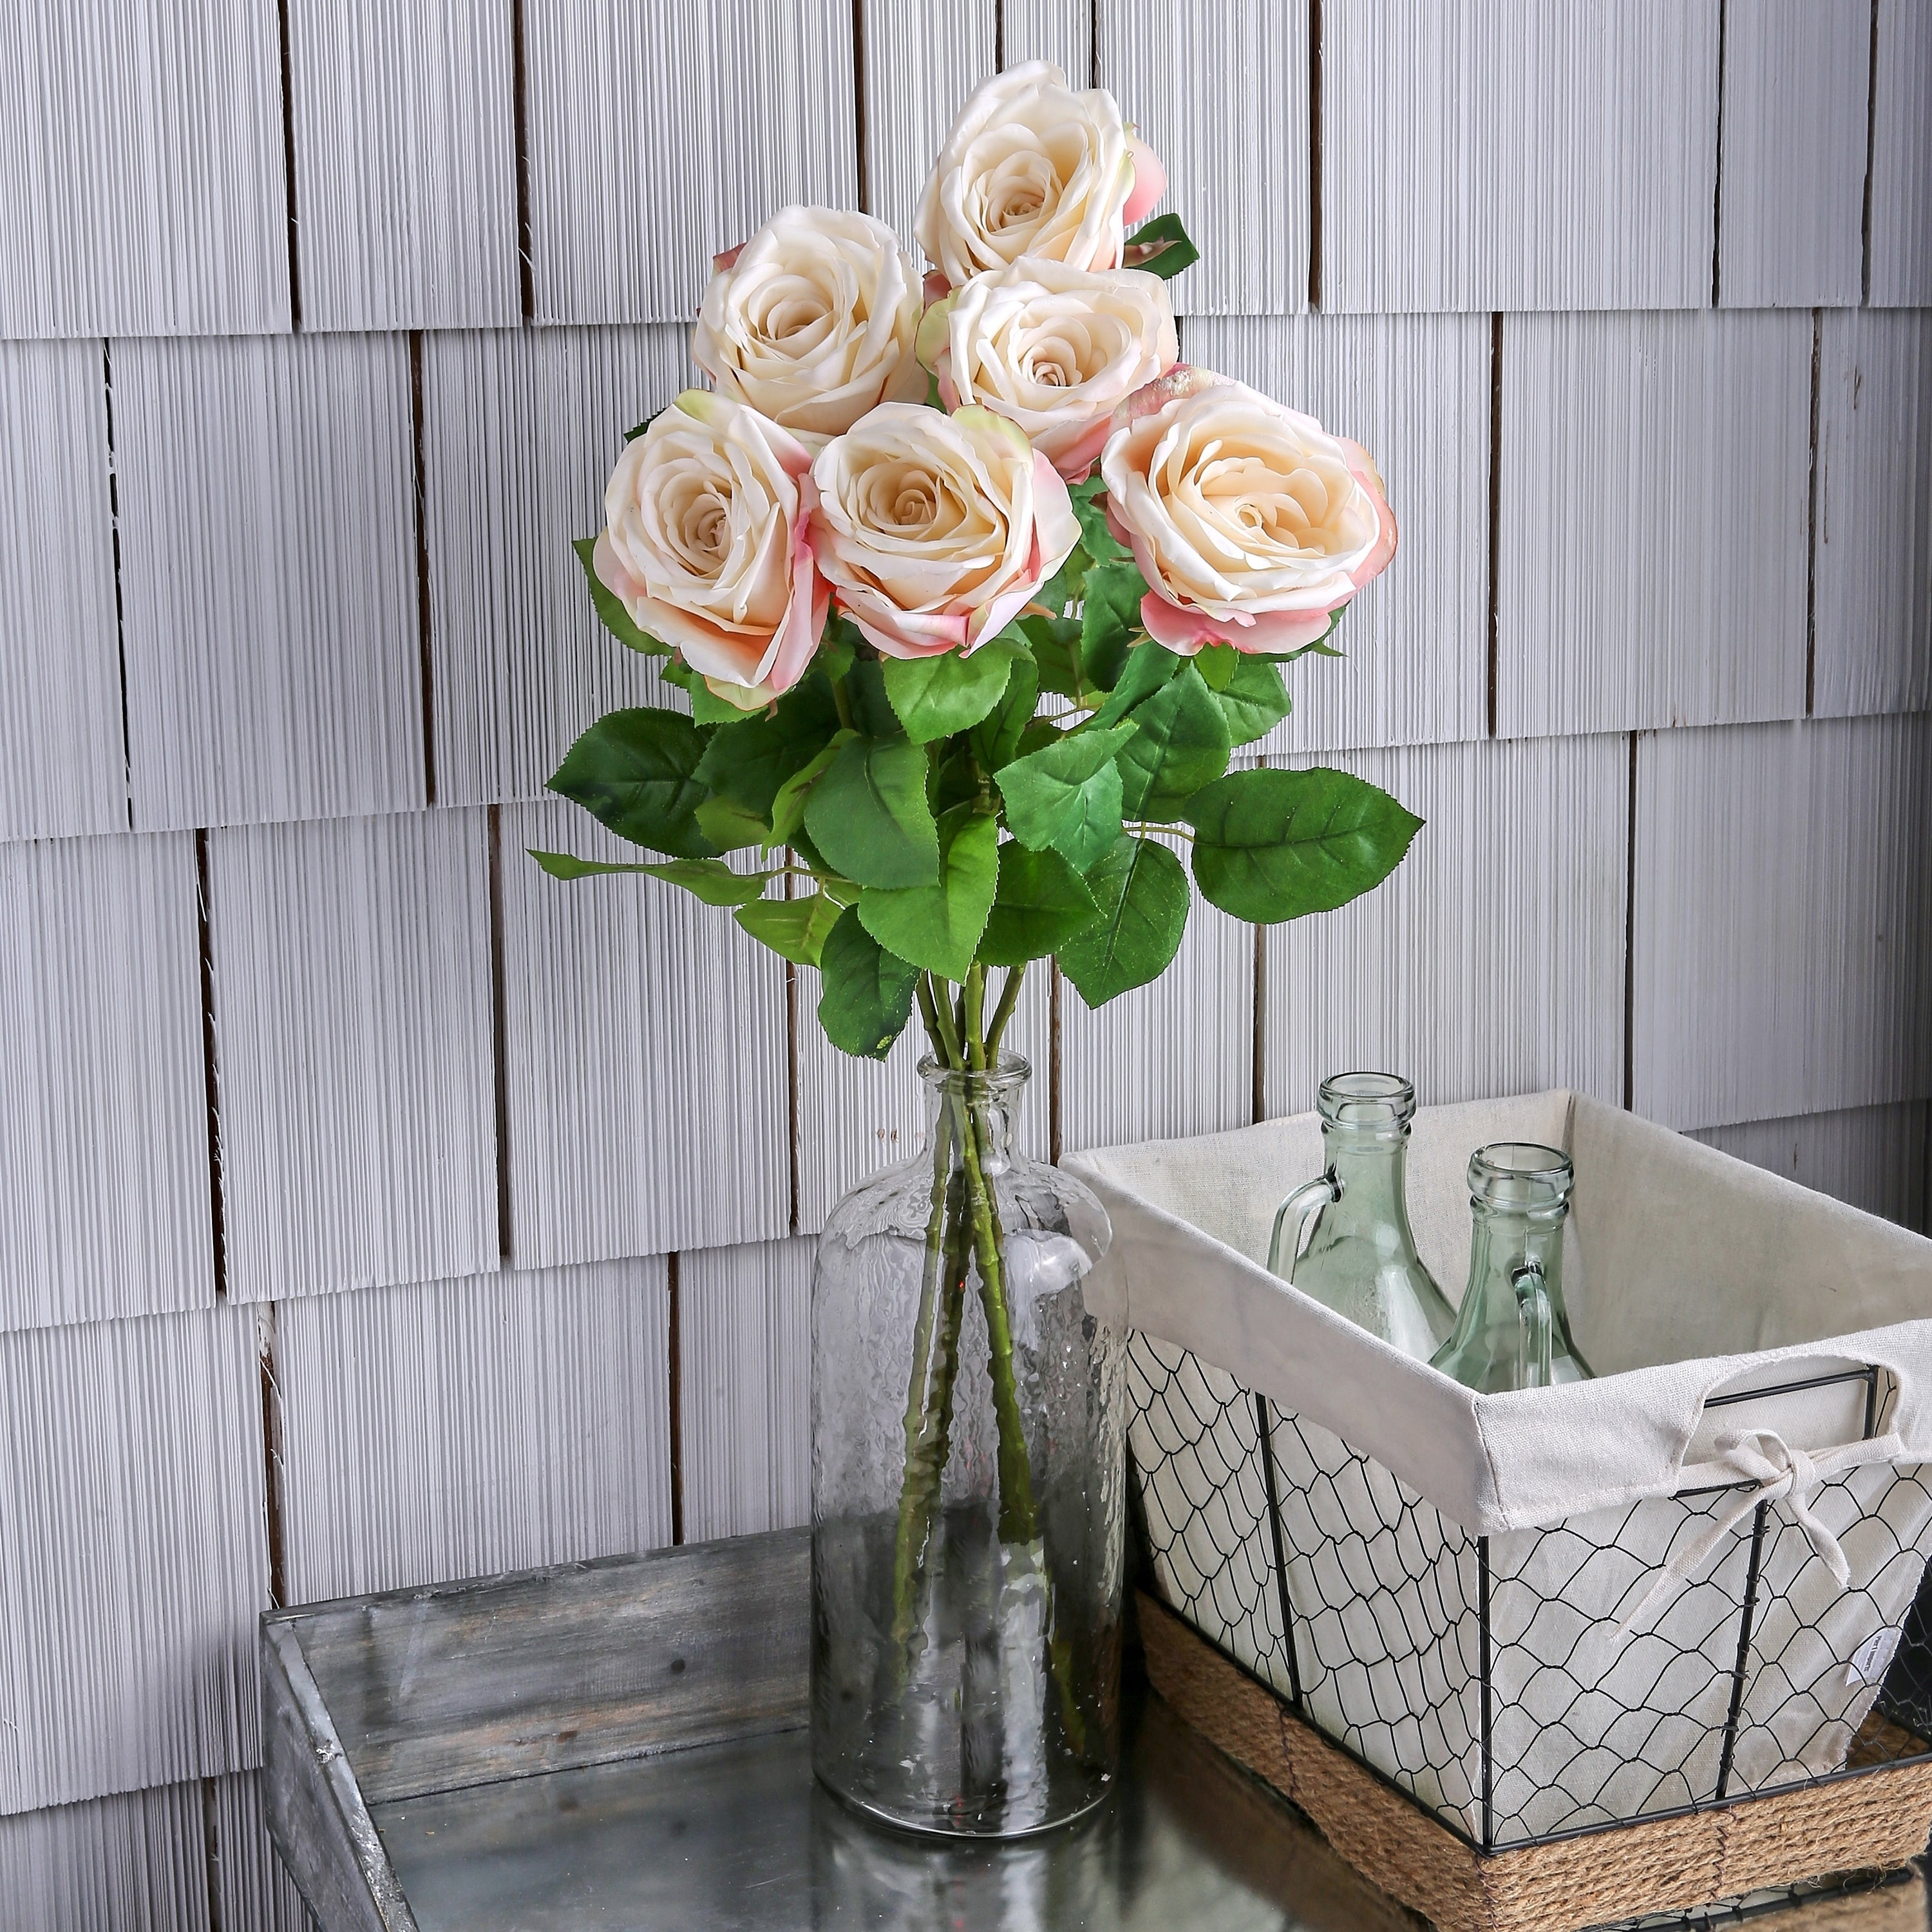 Natural Touch French Roses 26 Long (Set of 6) - Blush